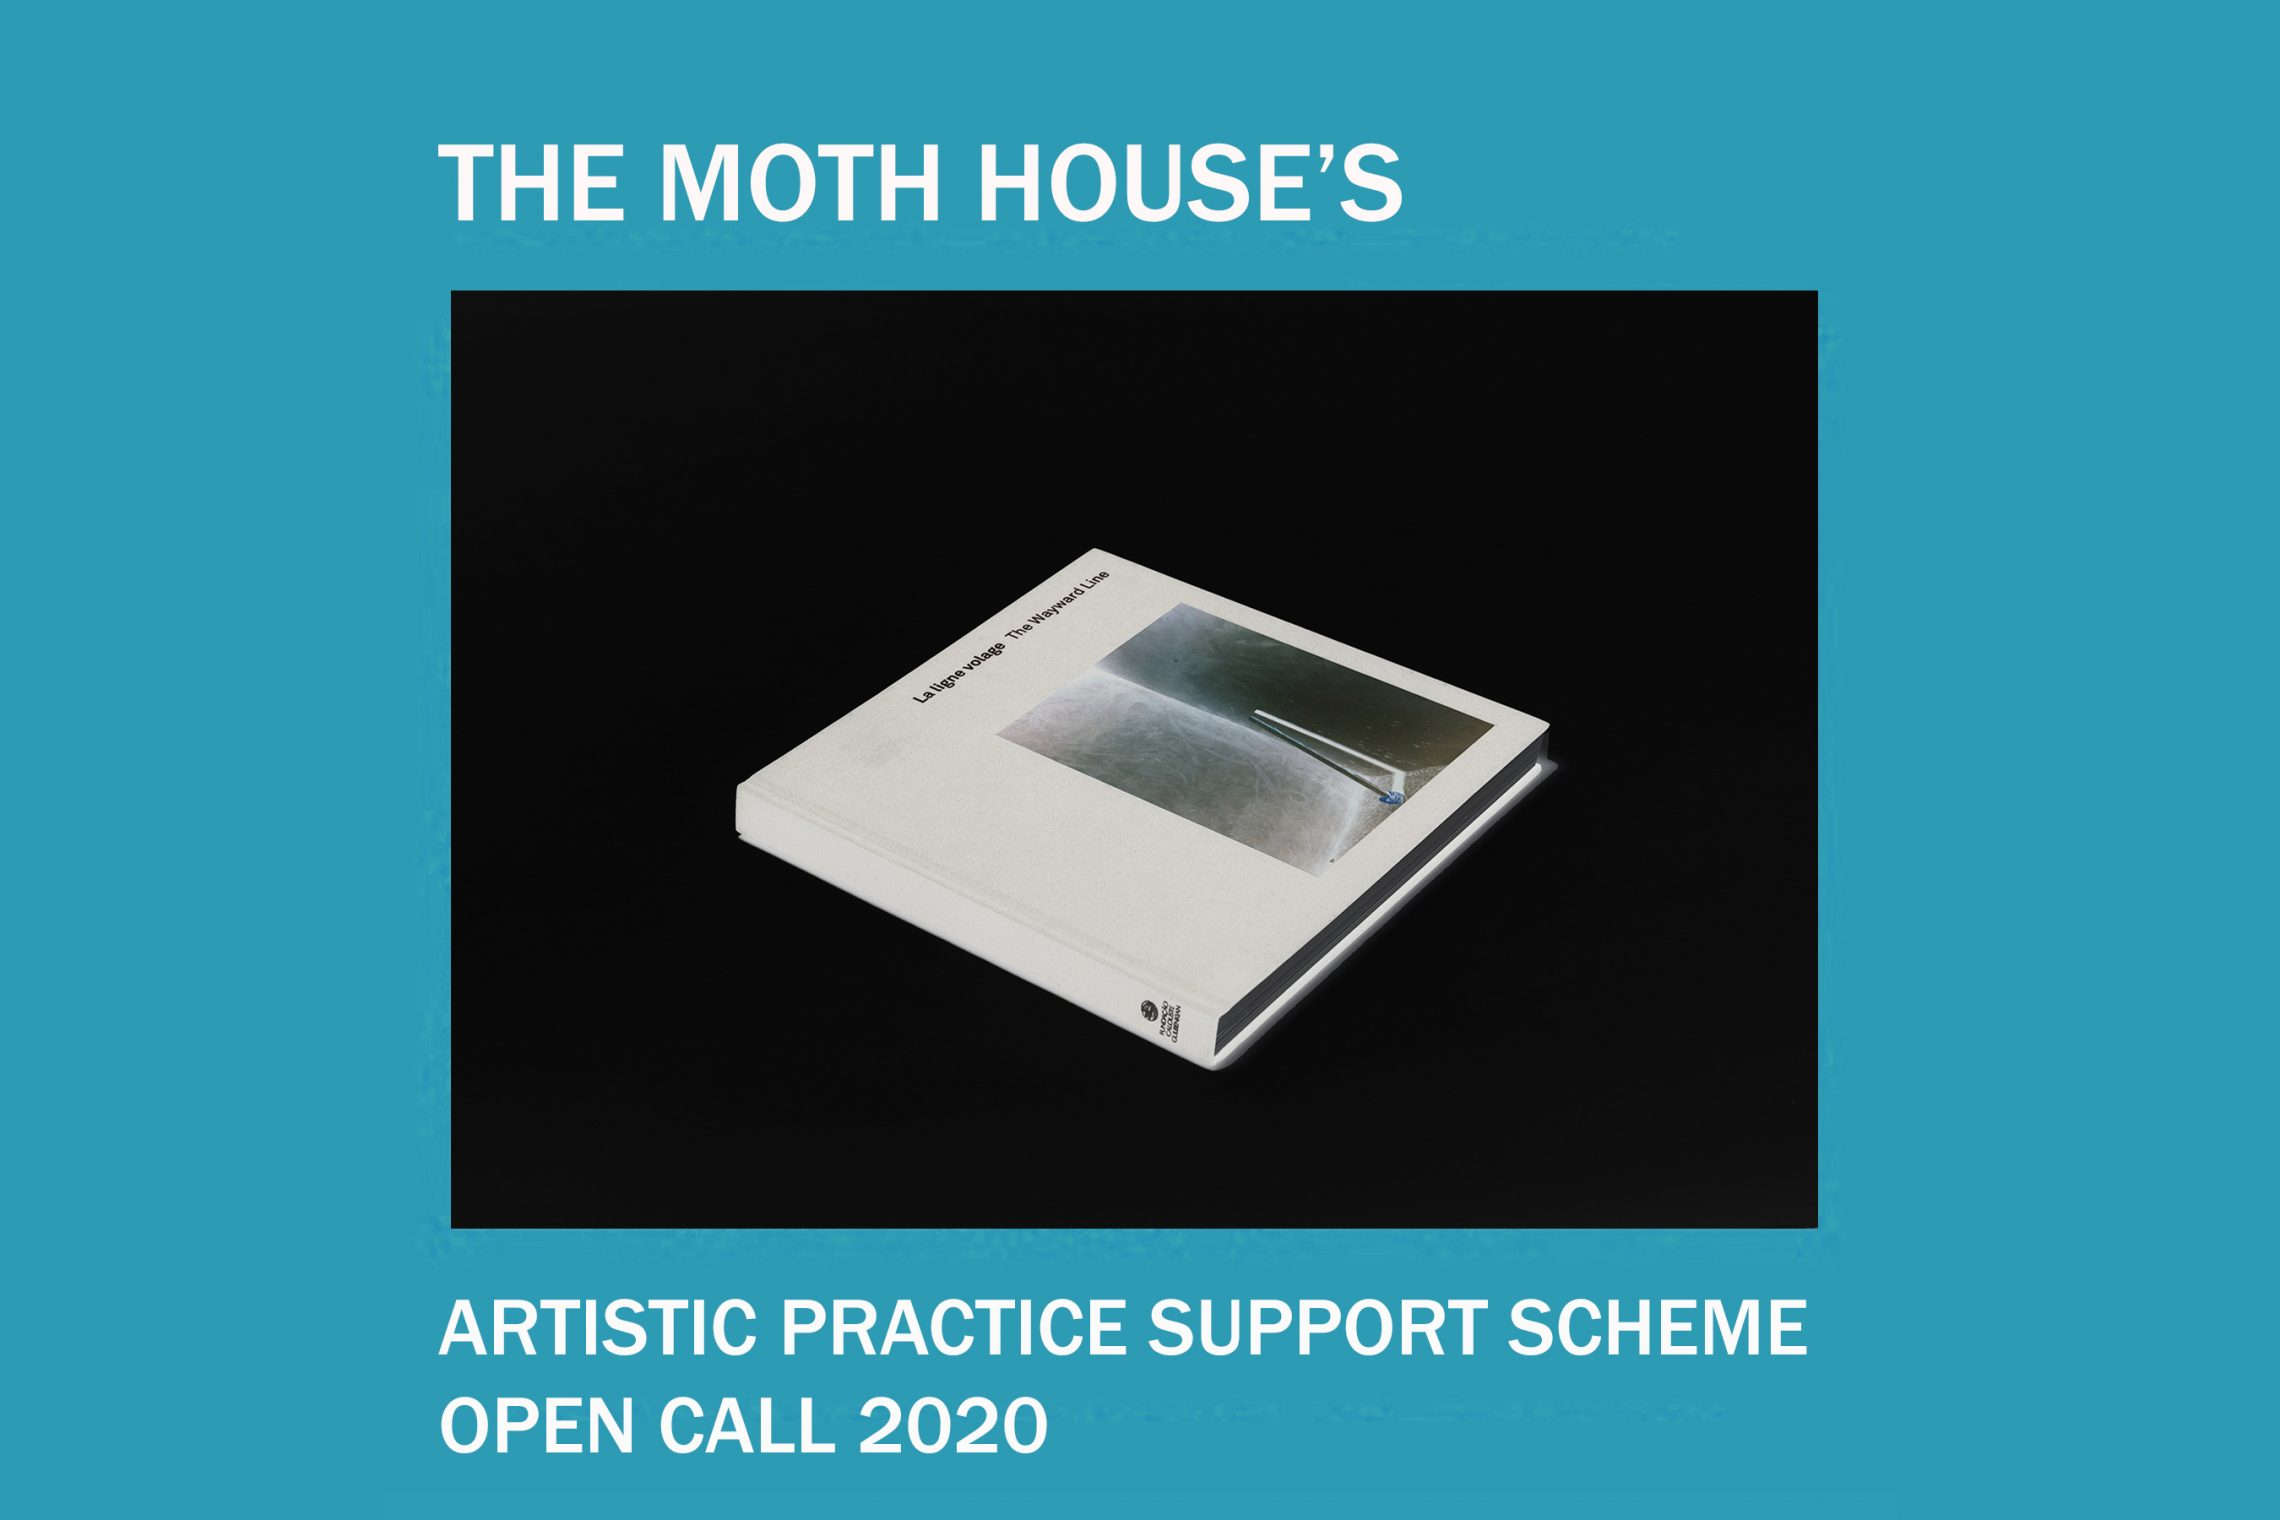 The Artistic Practice Support 2020 Open Call